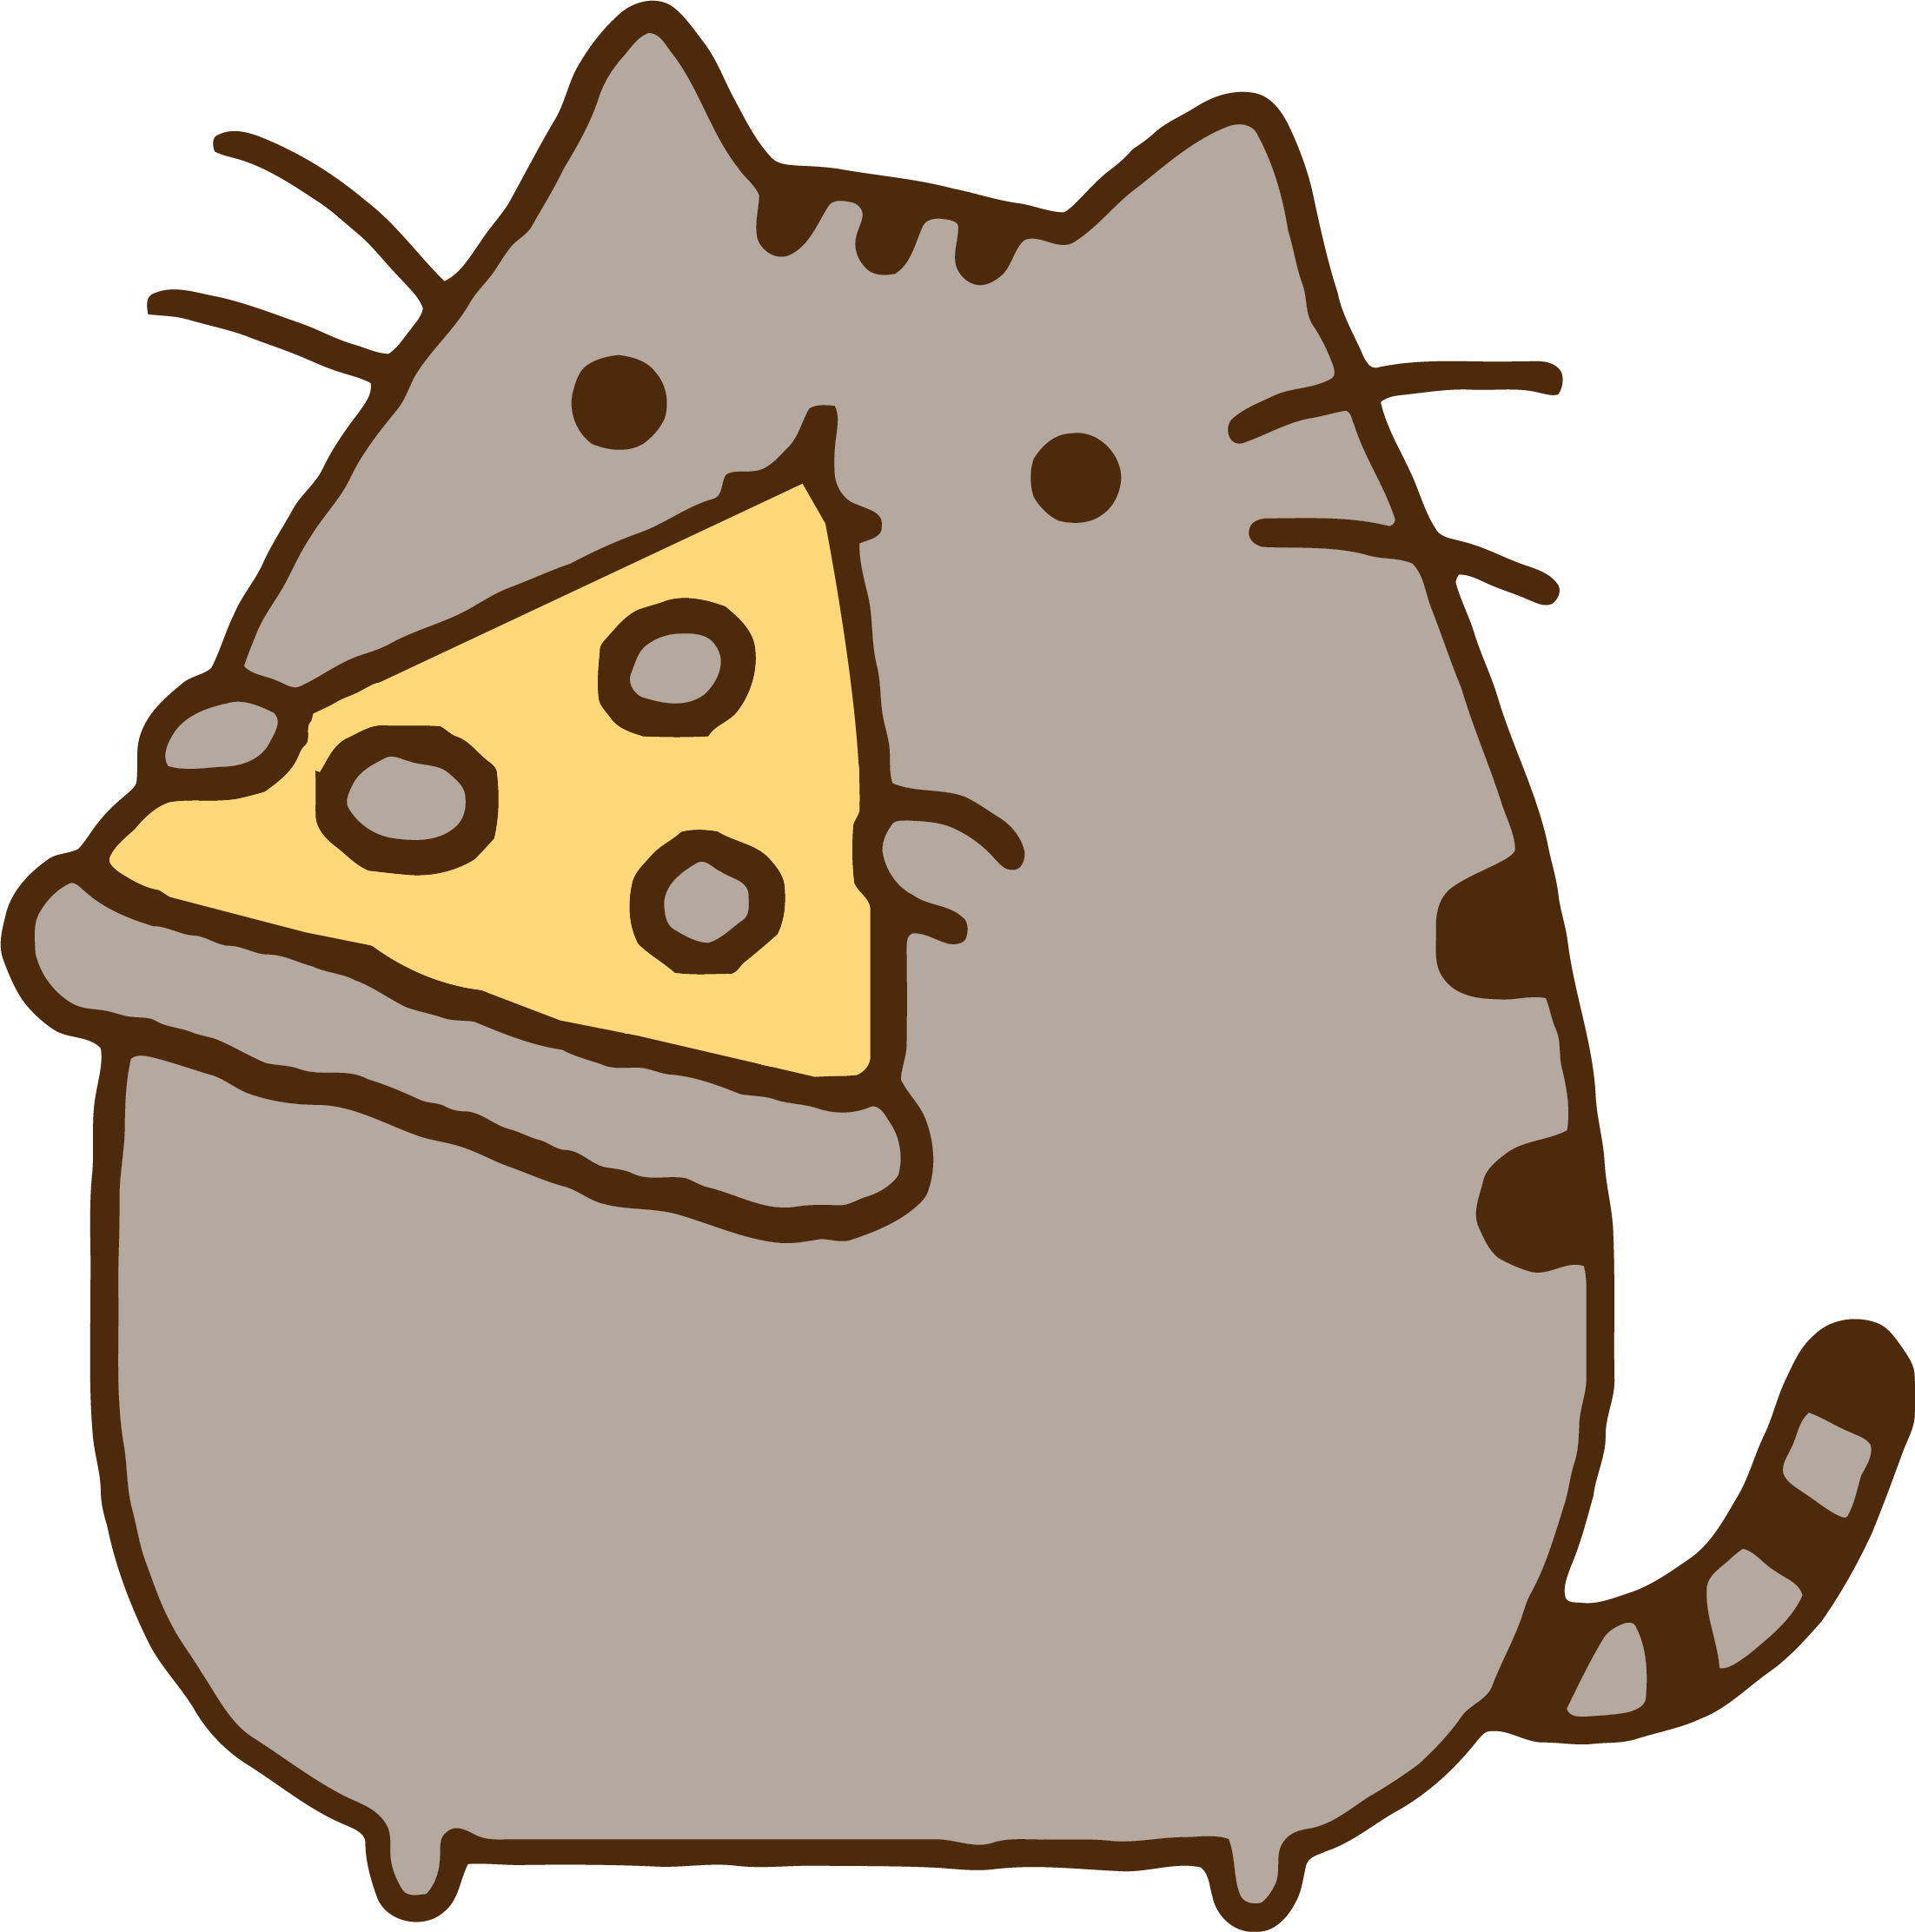 Pusheen pizza png. Clipart cat image typegoodies